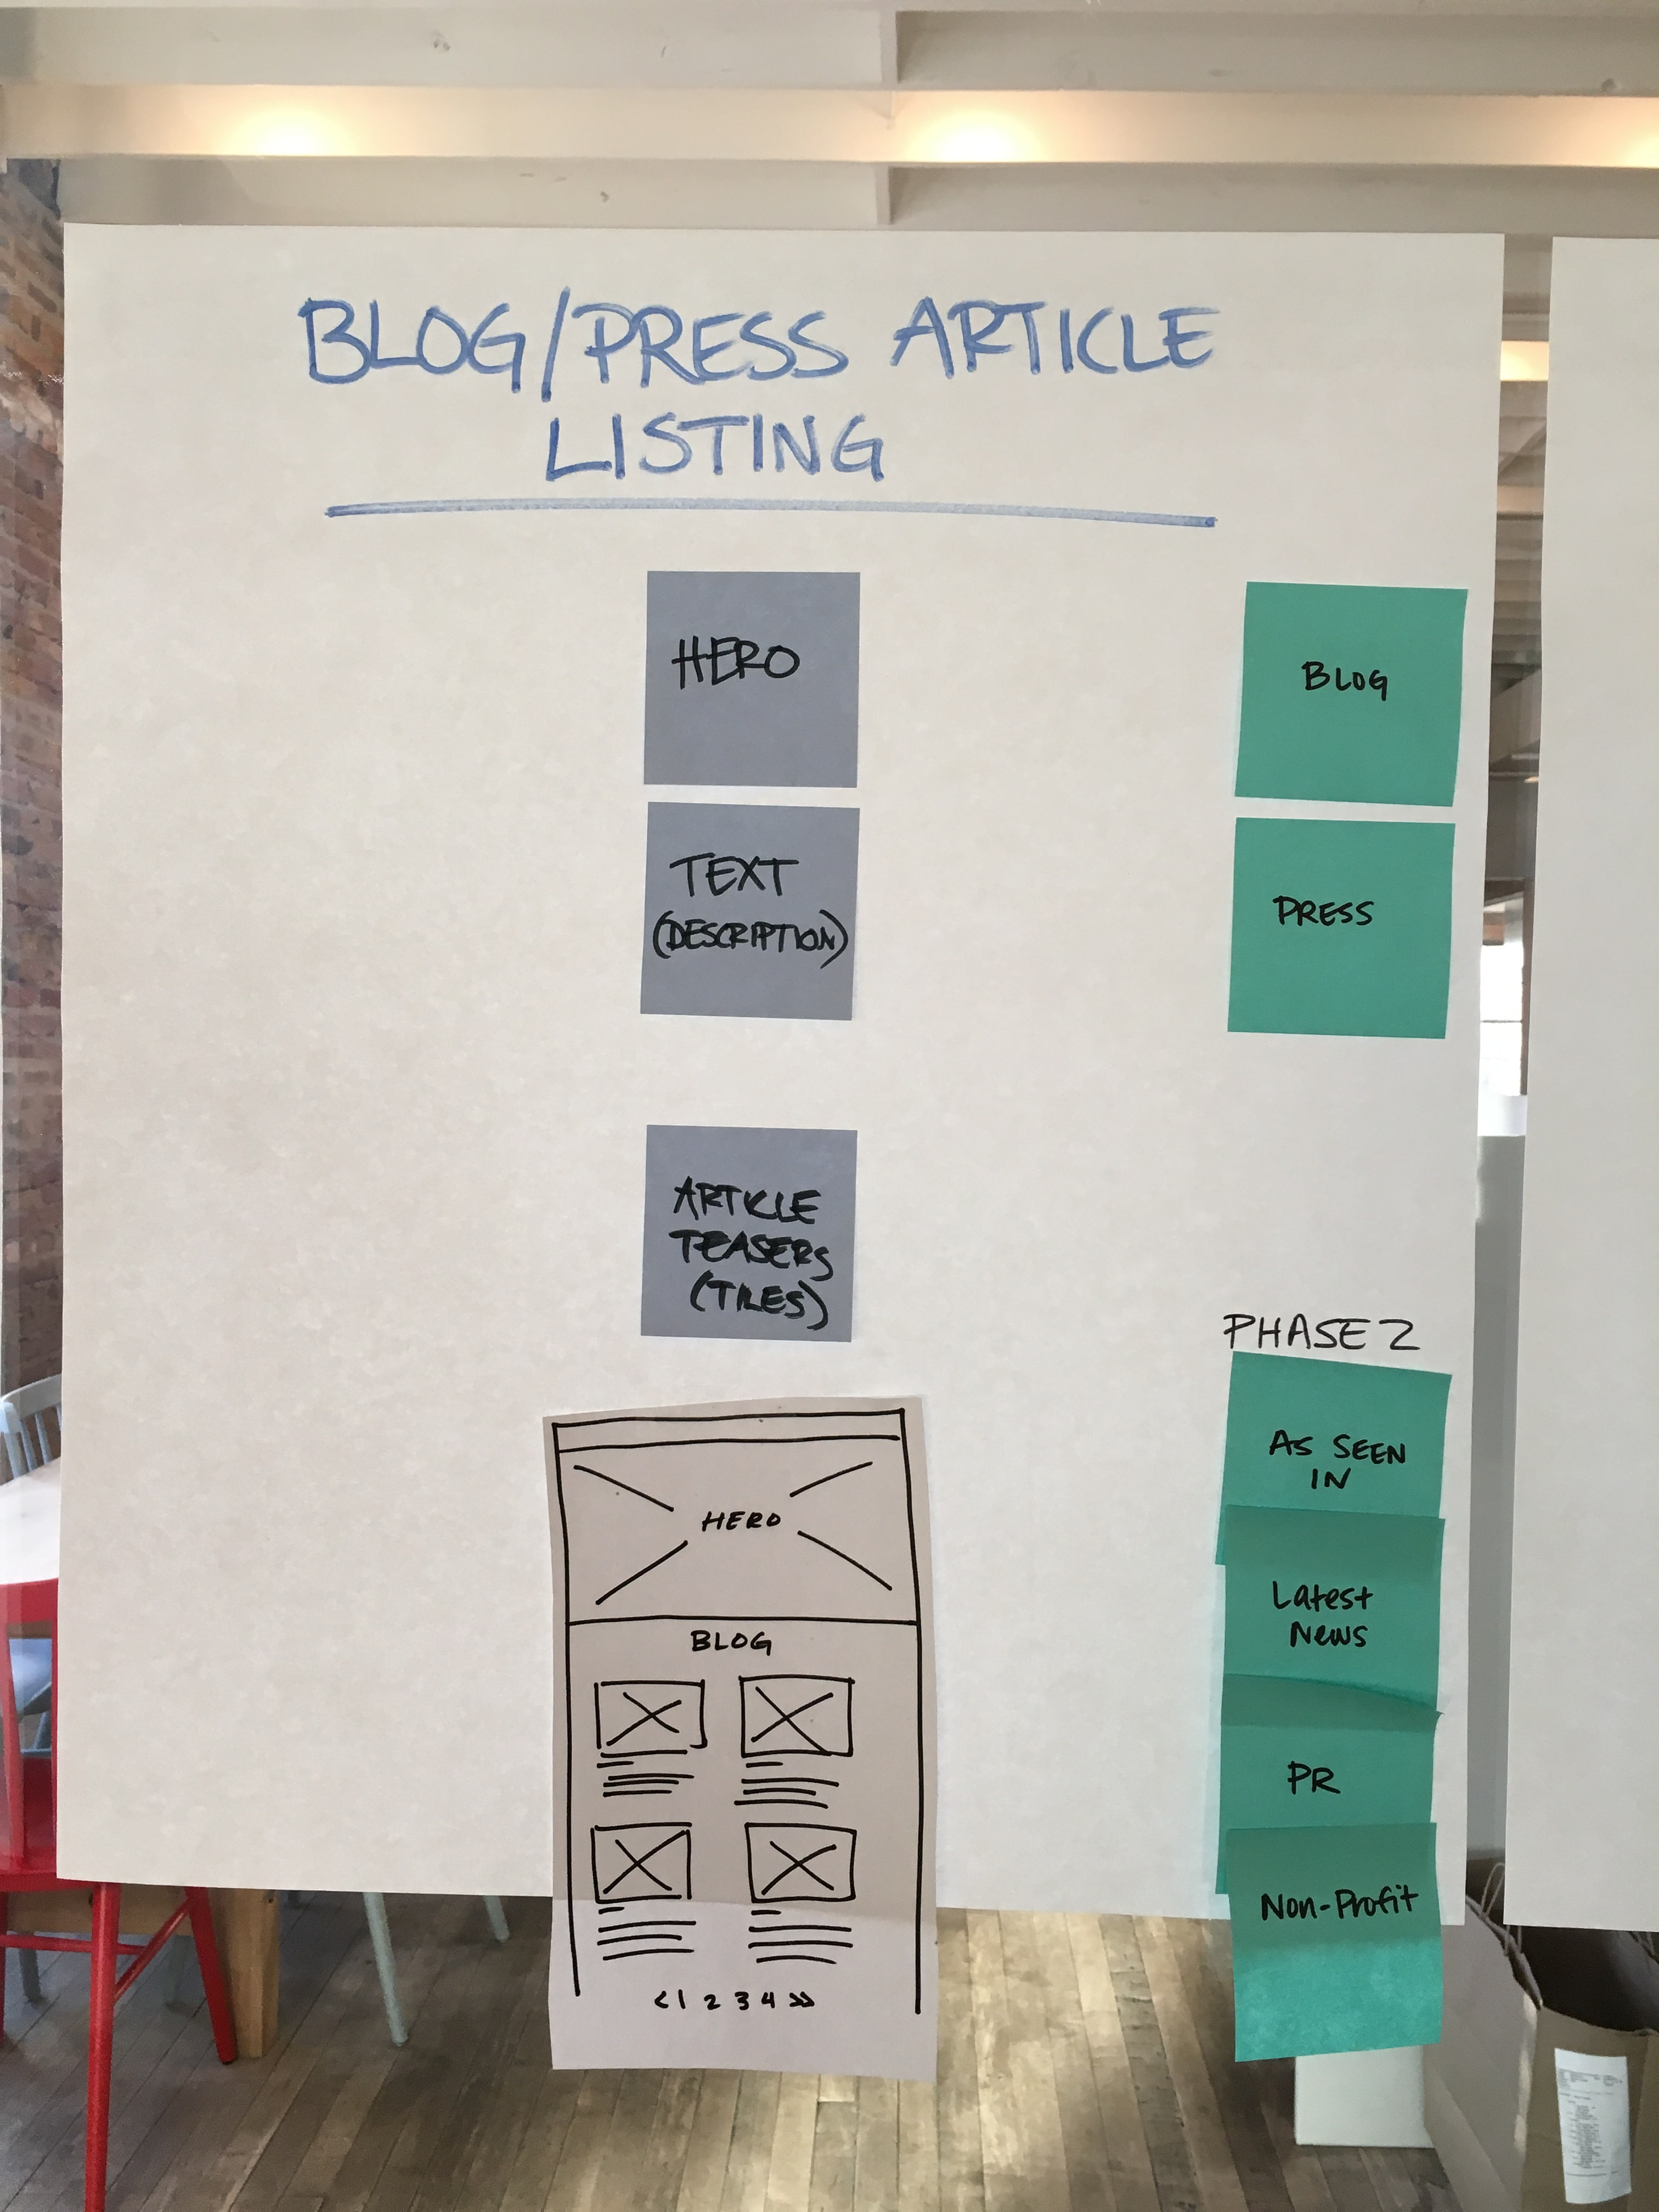 article listing content modeling-min.JPG